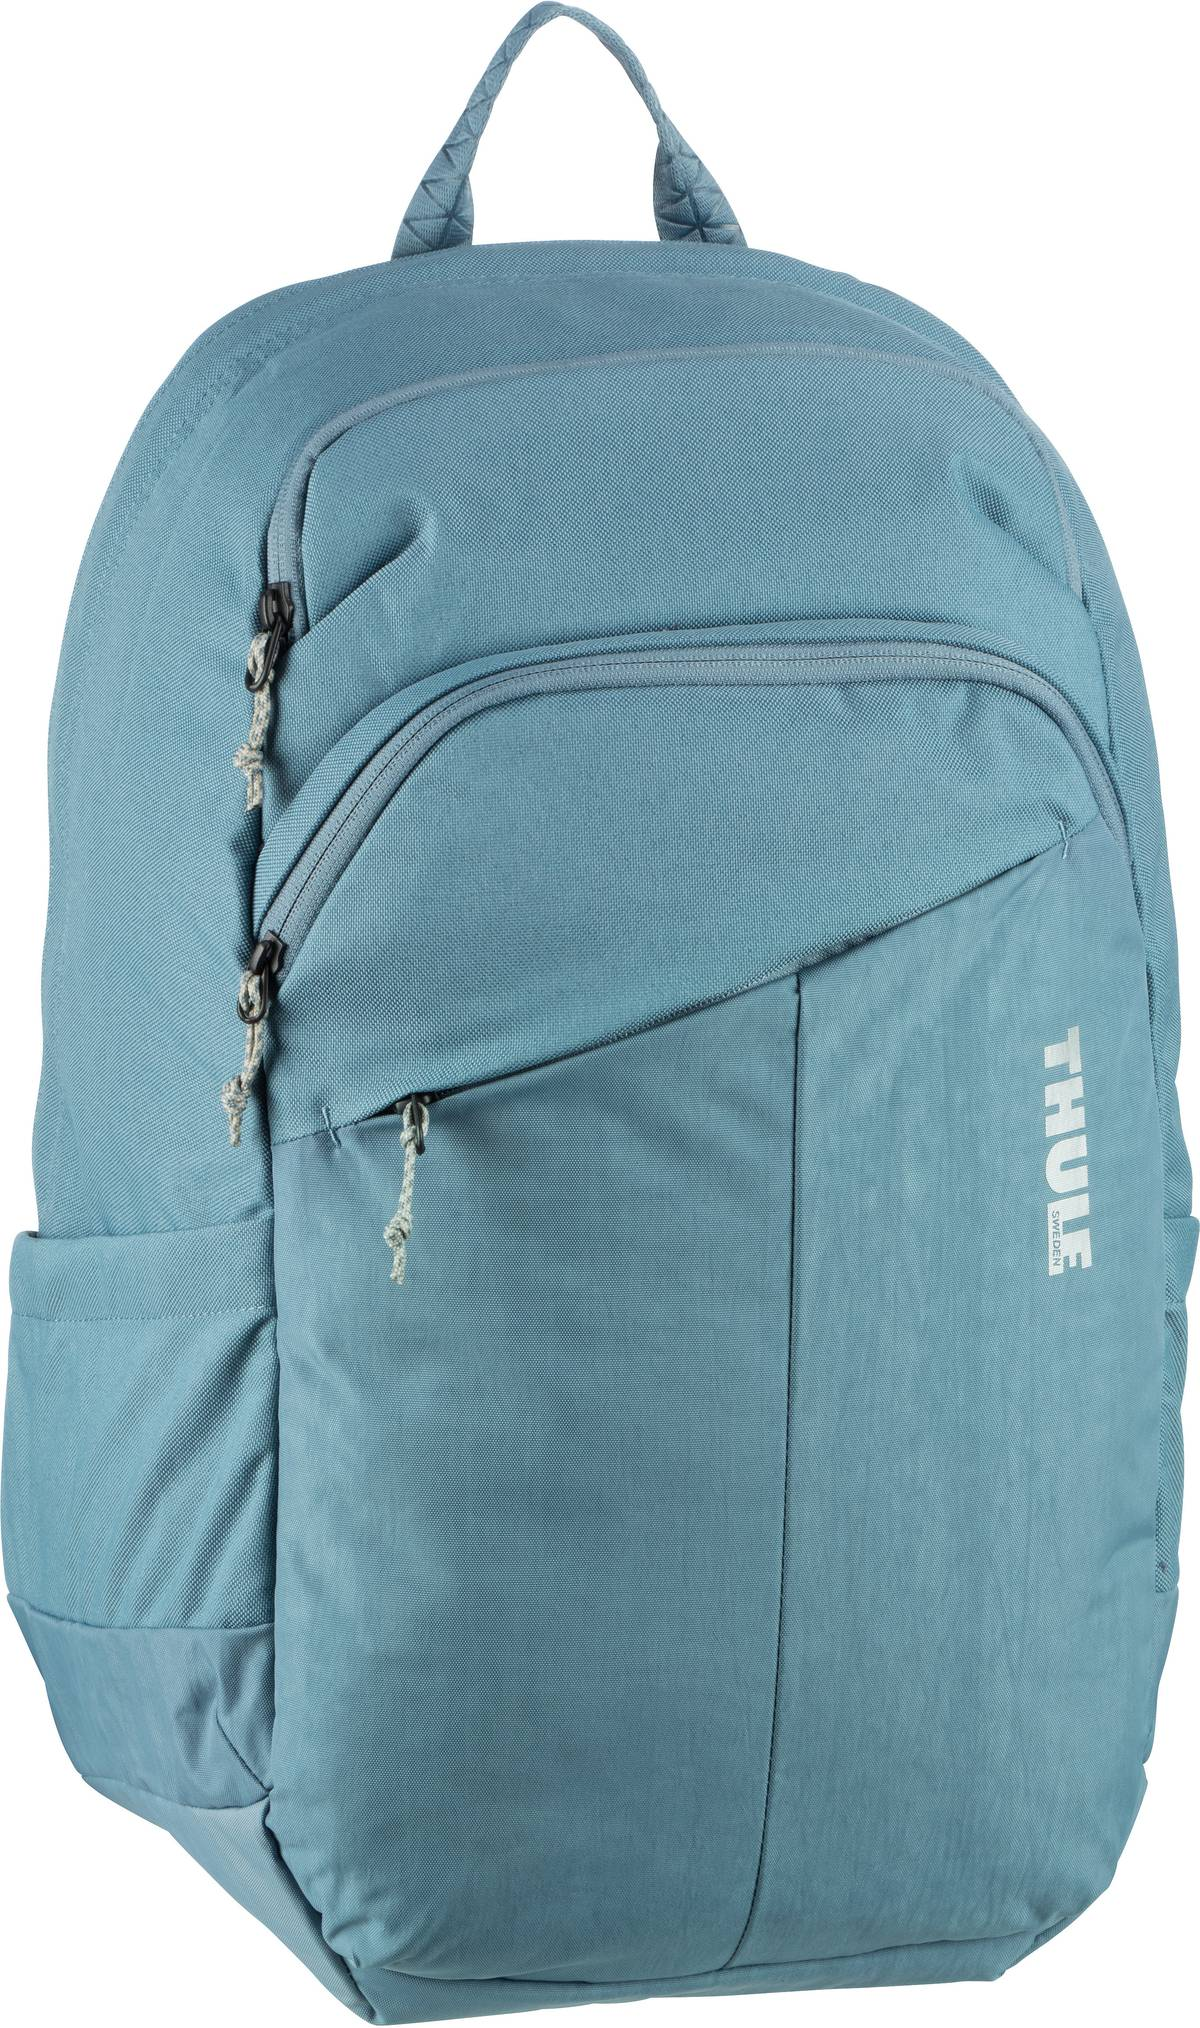 Laptoprucksack Exeo Backpack Aegean Blue (28 Liter)